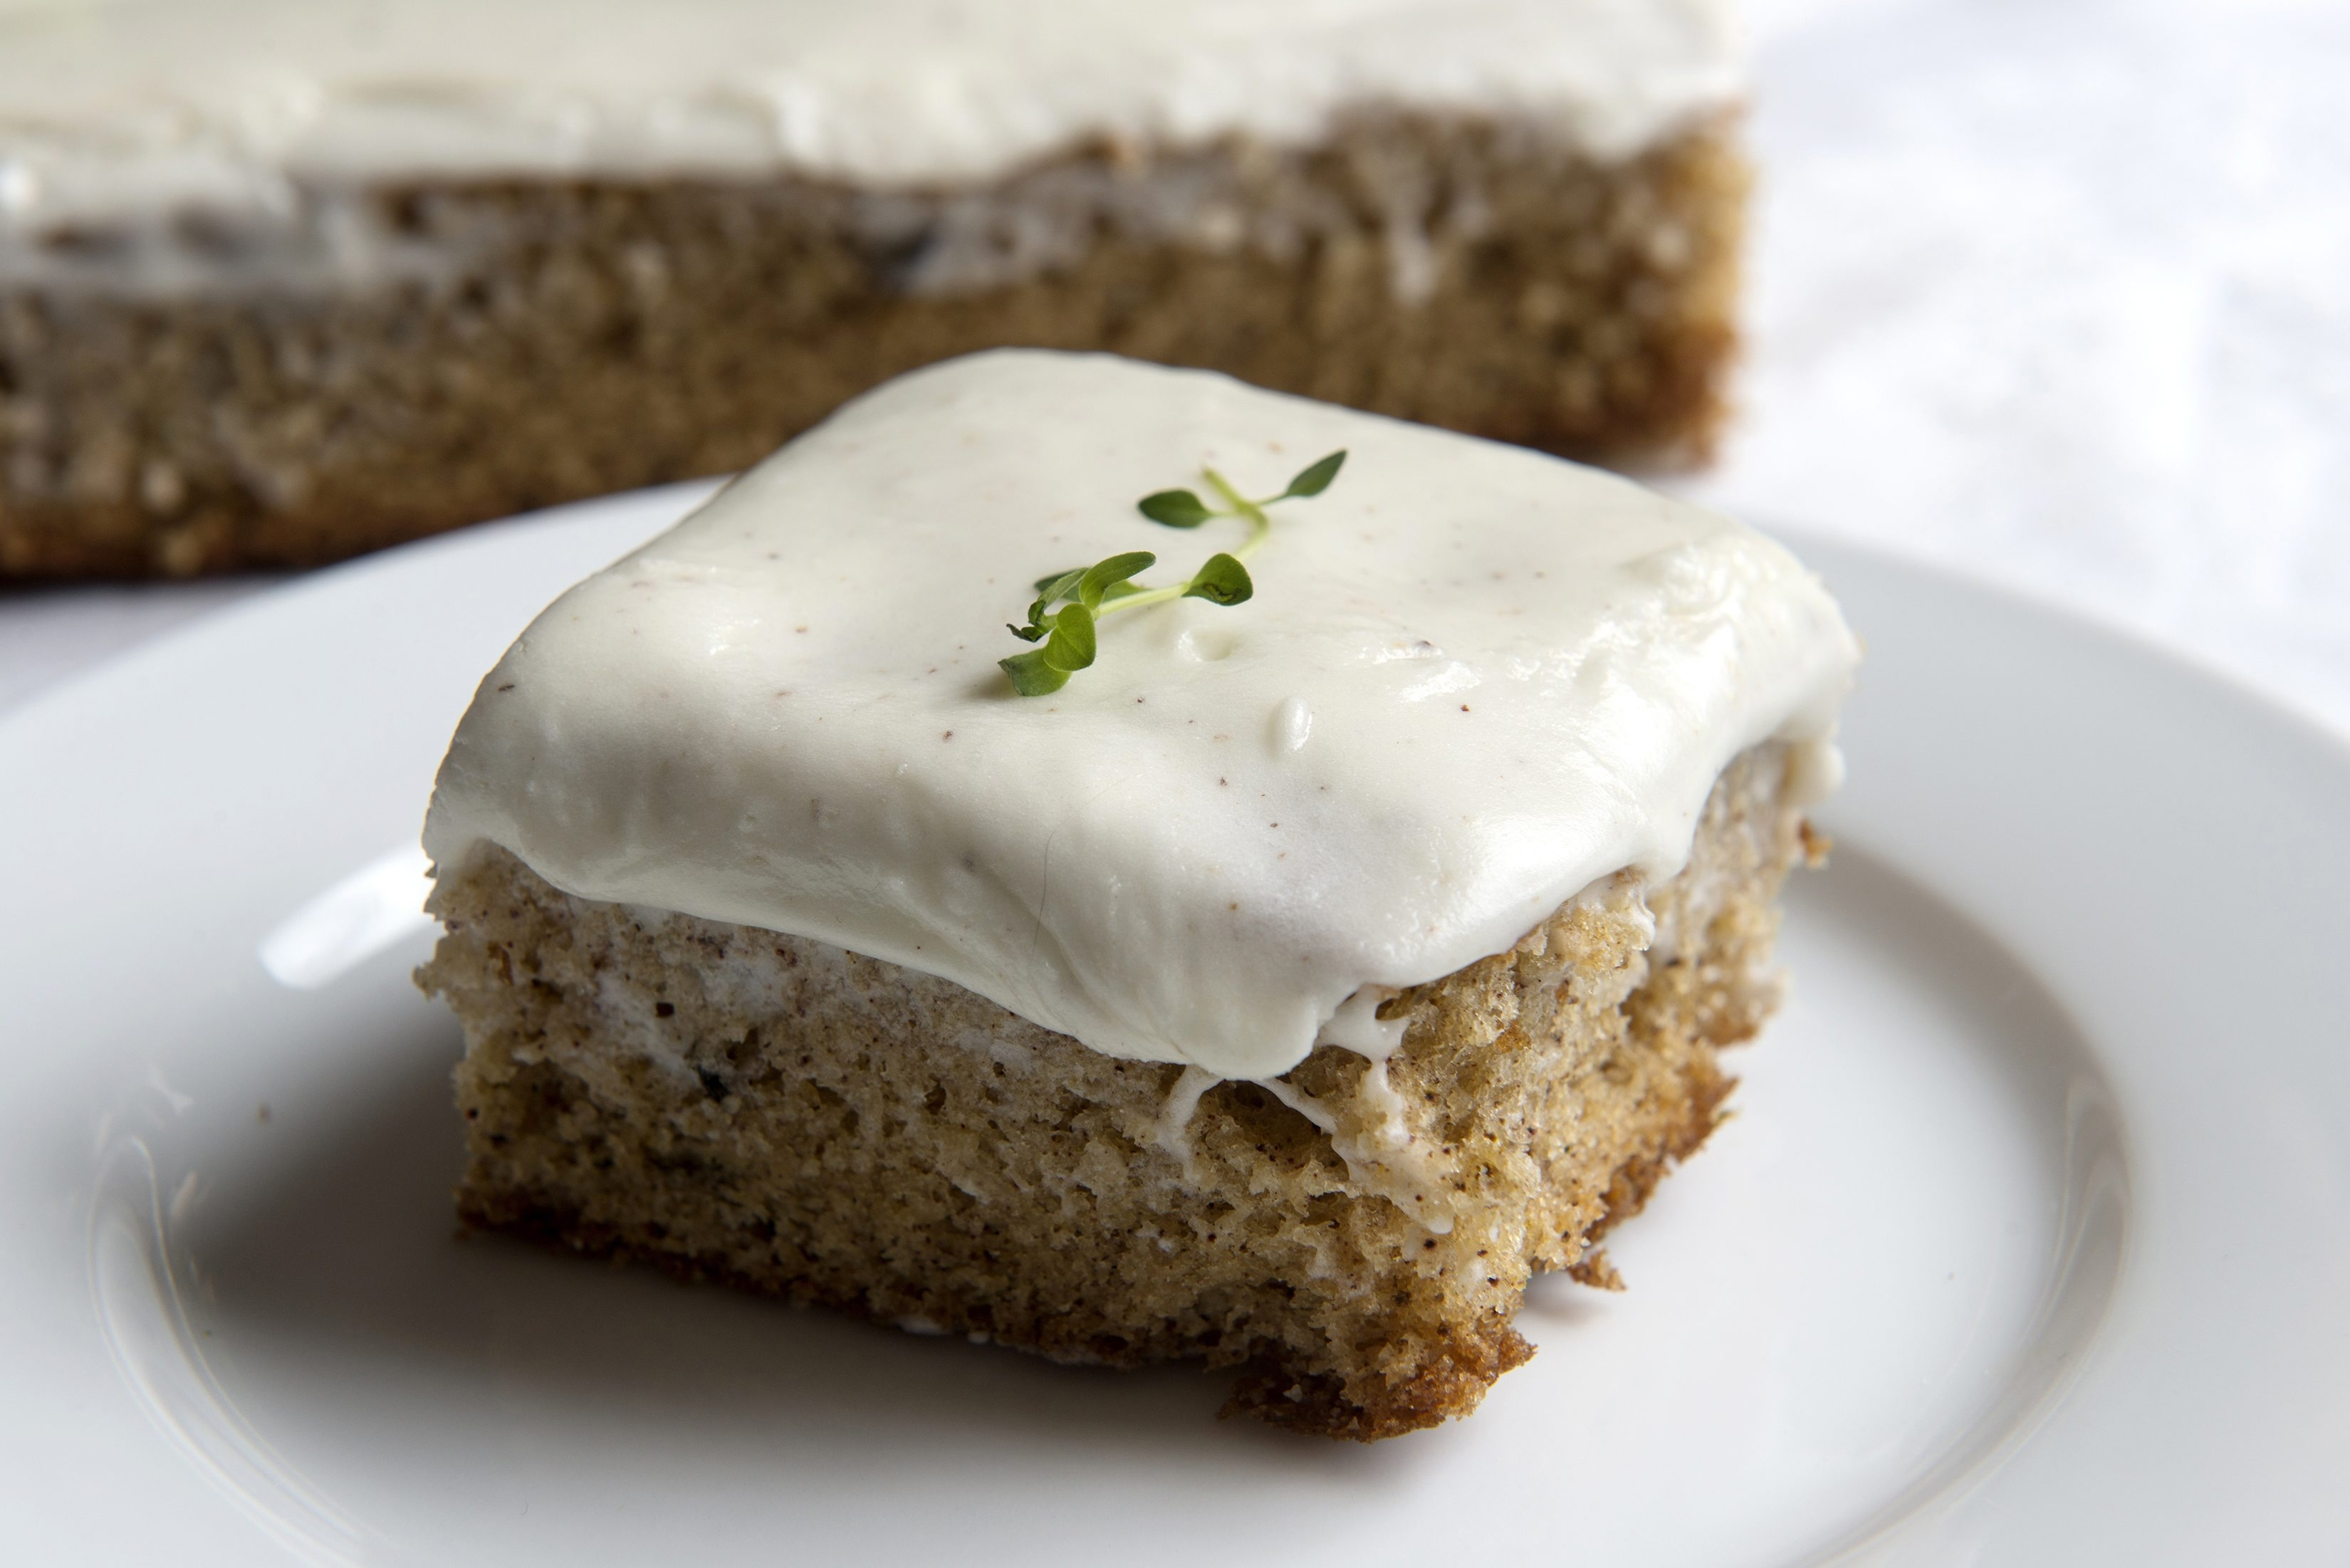 Playing well with sweet and savory alike, lemon thyme adds a flavorful touch to spice cake.